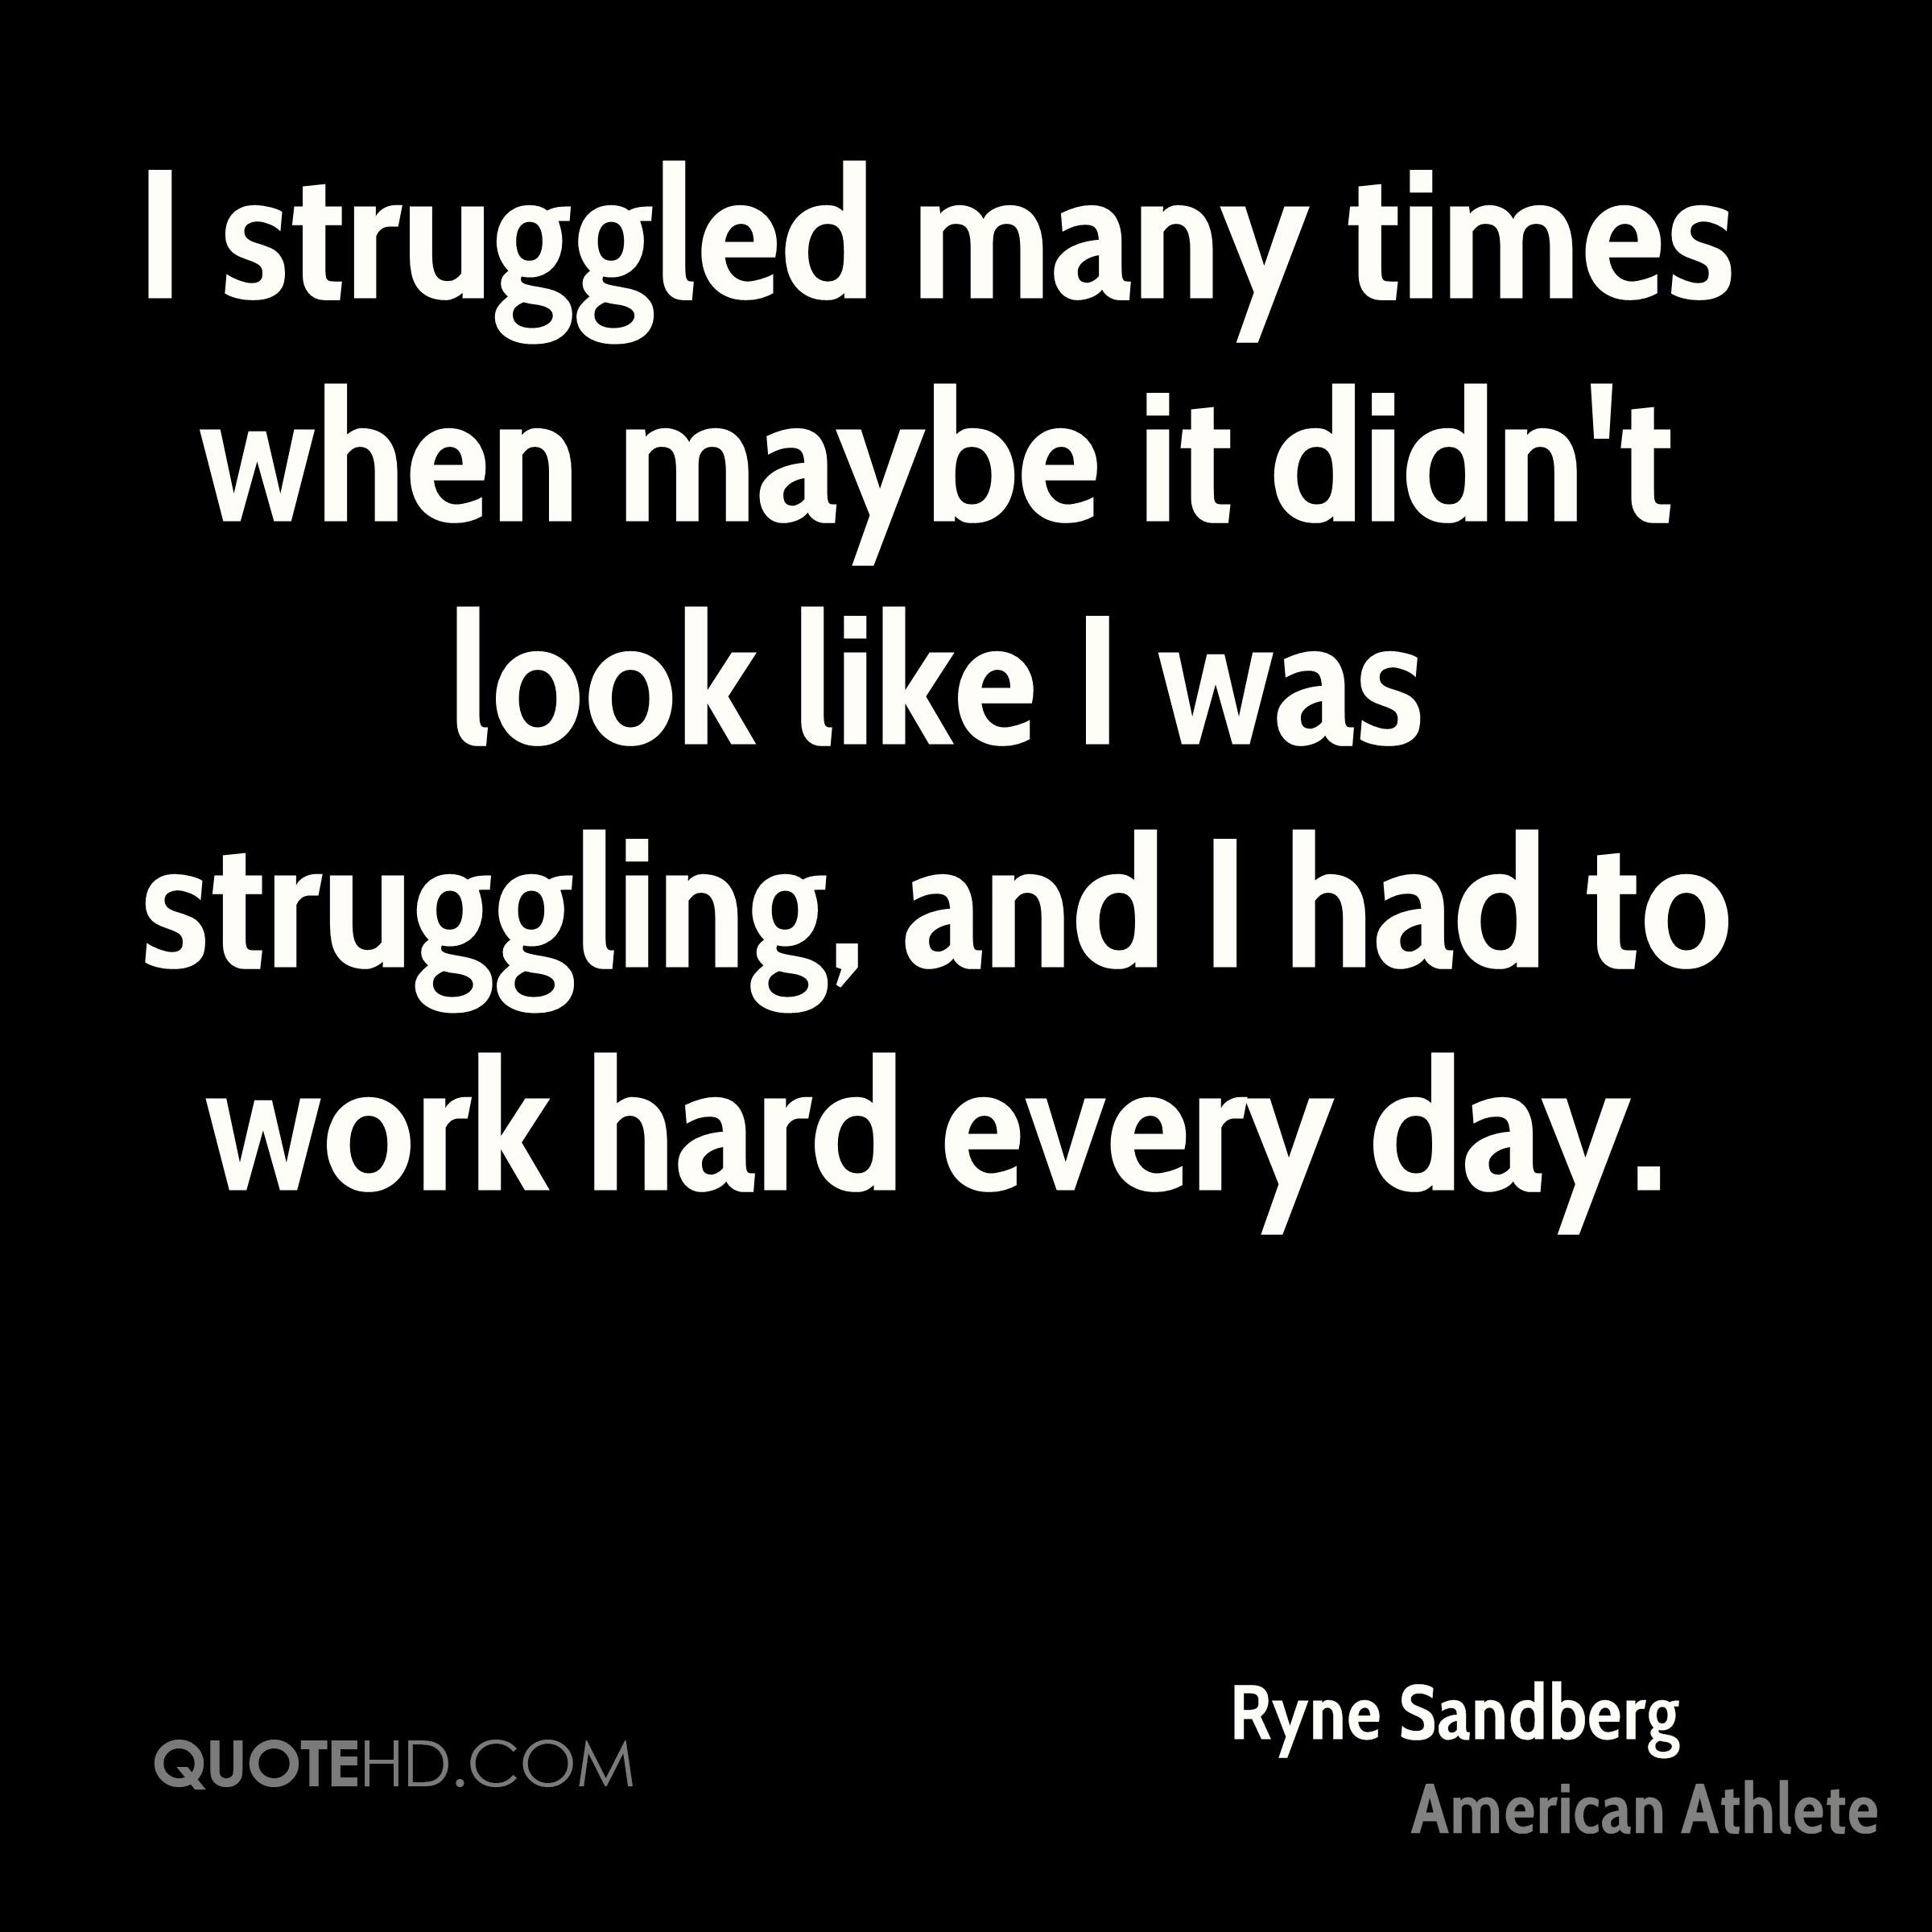 I struggled many times when maybe it didn't look like I was struggling, and I had to work hard every day.